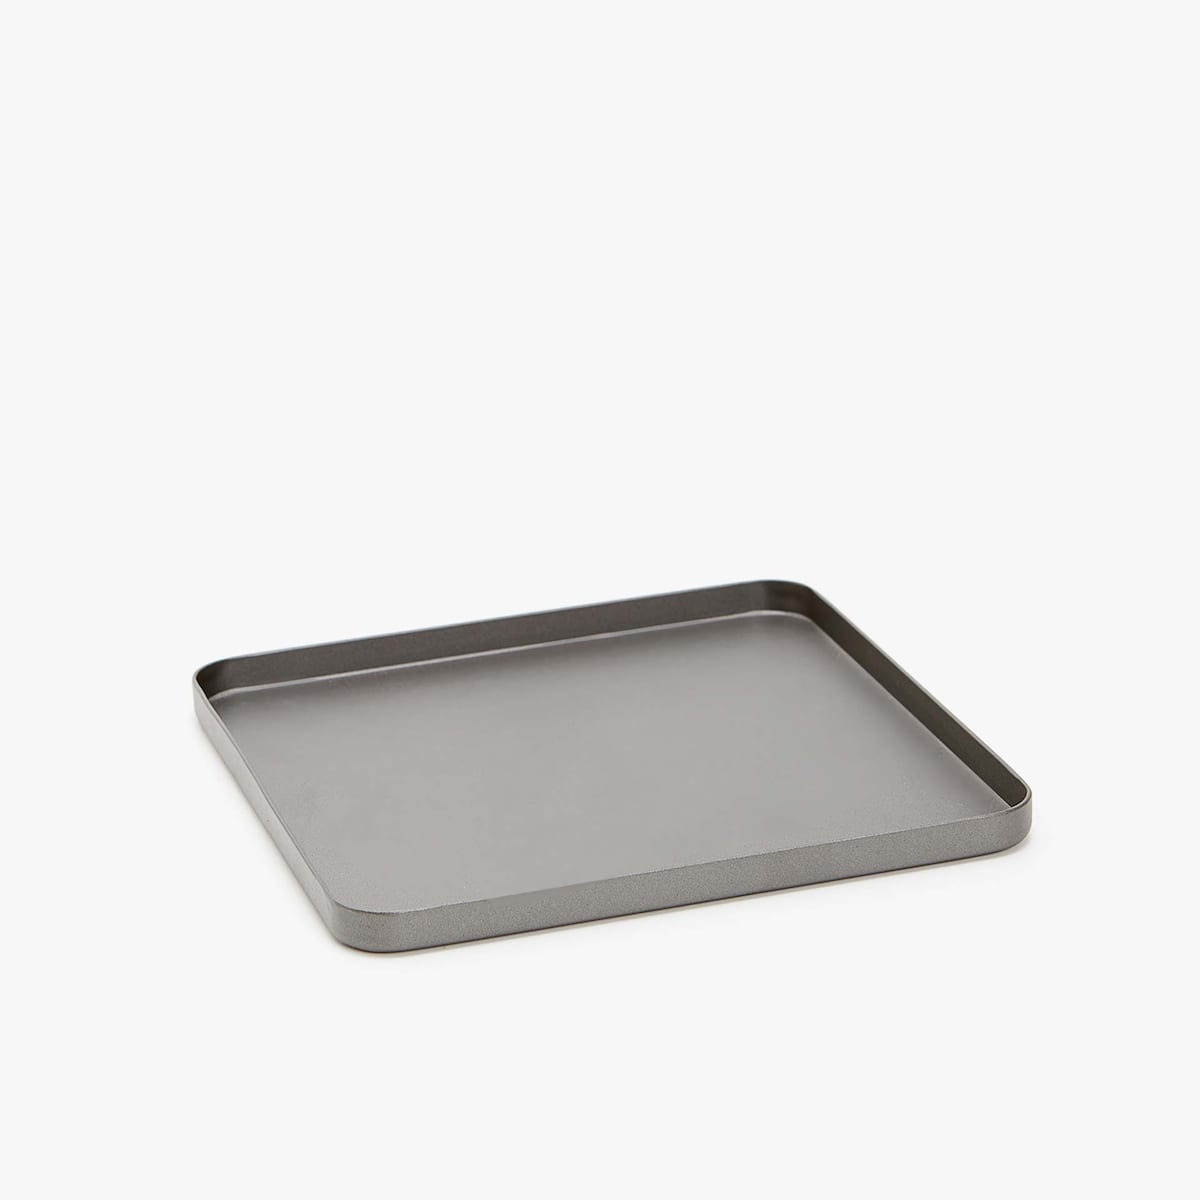 up tray ways to ideas chic for photo round in decor table dreaded coffee white decorating stone your concept of size full decorative freshen